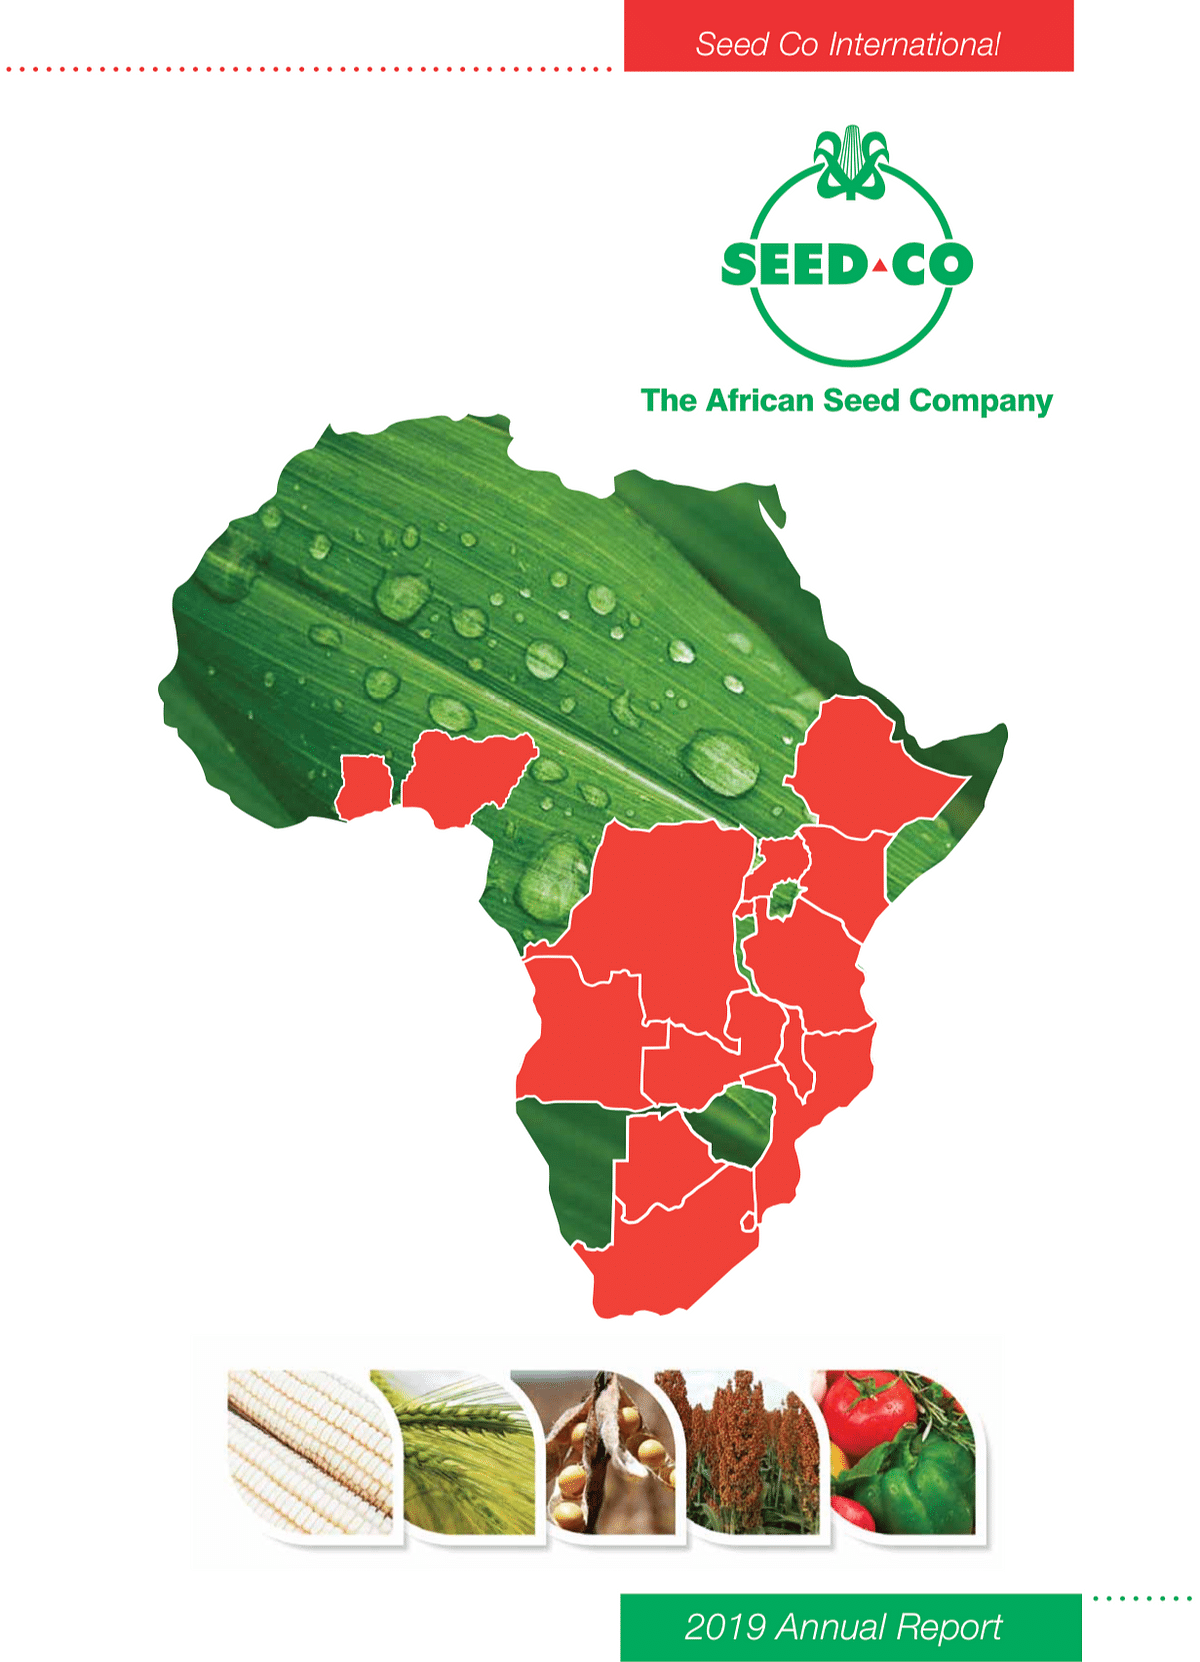 Seed Co International Annual Report 2019 cover